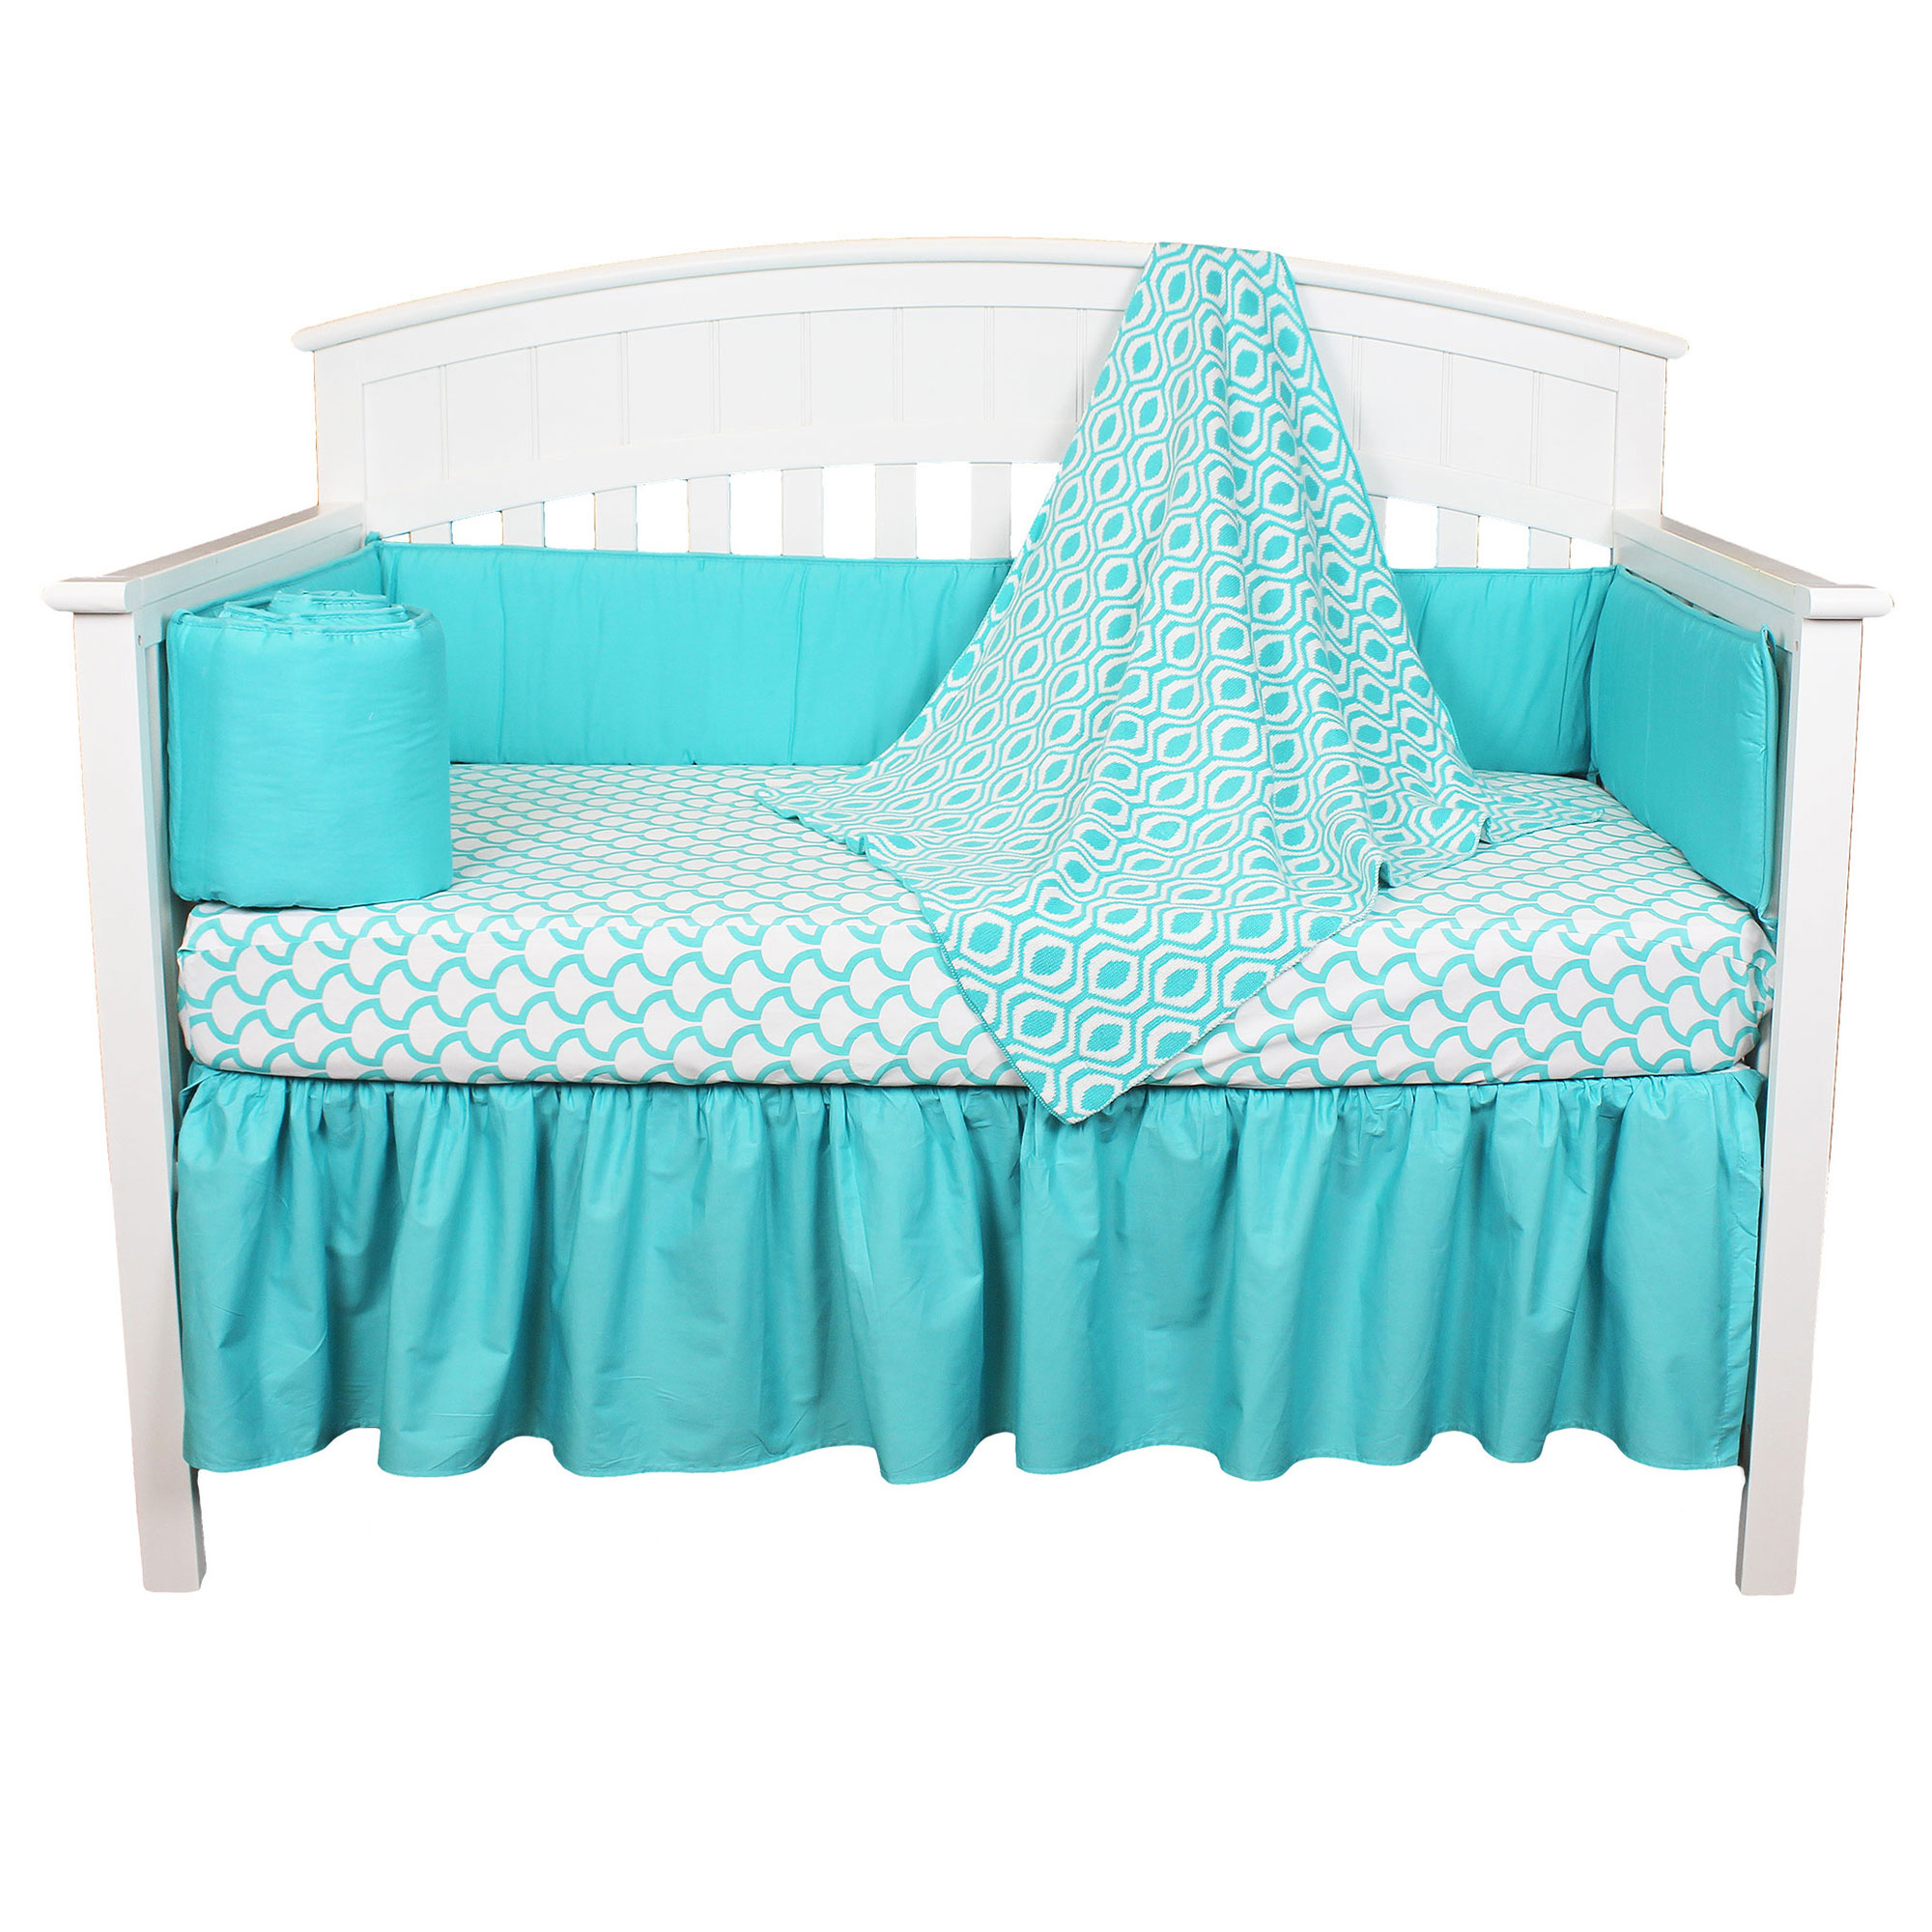 American Baby Company Crib Bedding Set - Turquoise Ogee Design, 100% Cotton - 4 Piece Baby Crib Bedding Set with Bumper